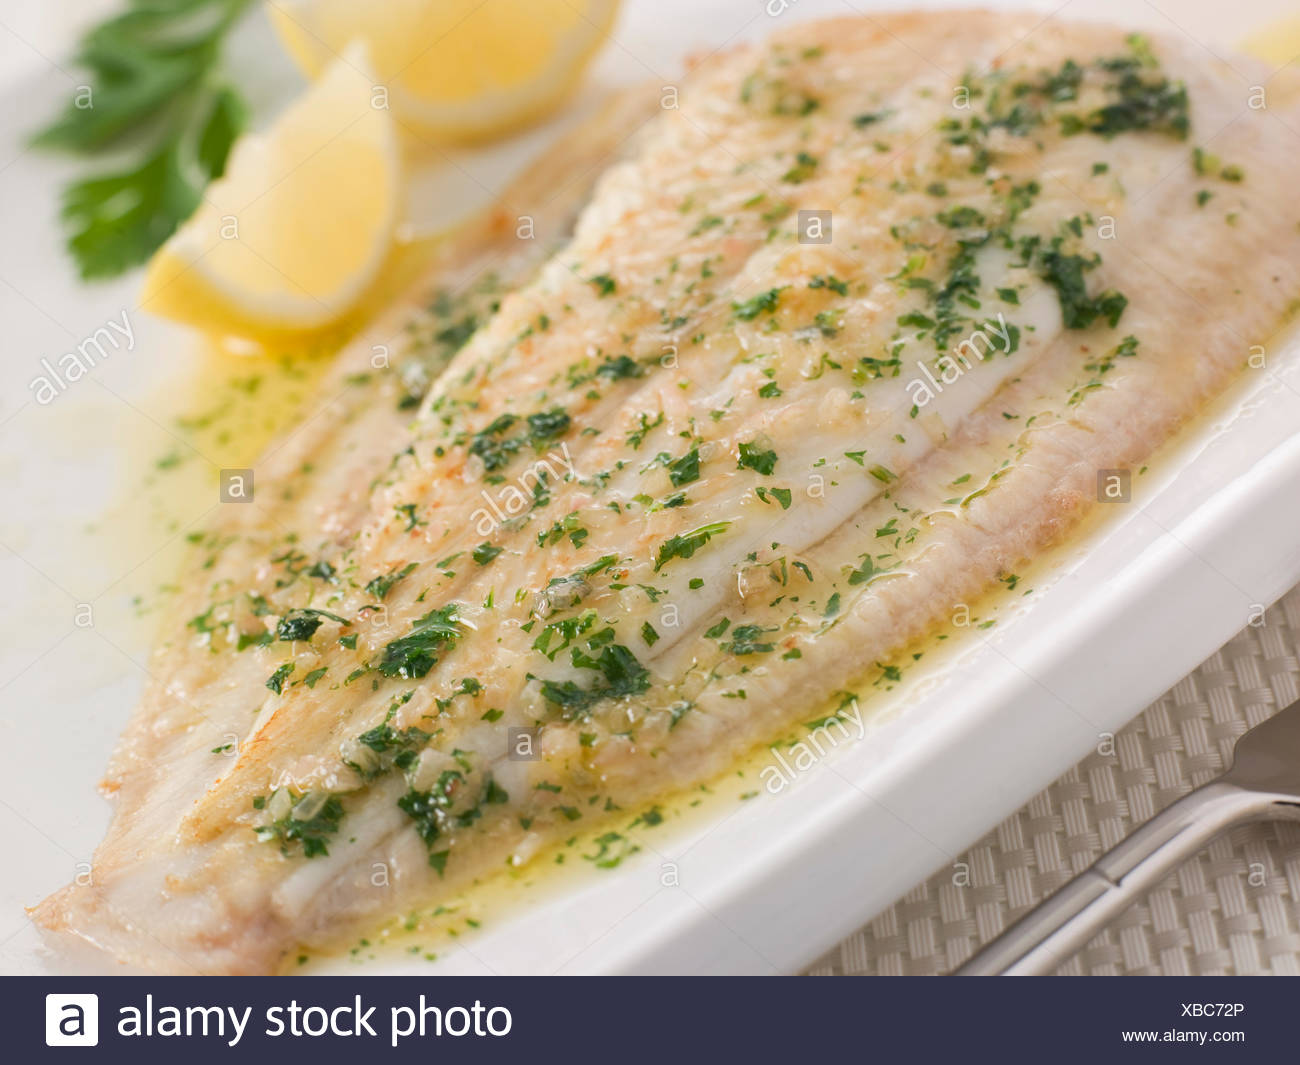 Dover sole sauce stock photos dover sole sauce stock for Sole fish fillet